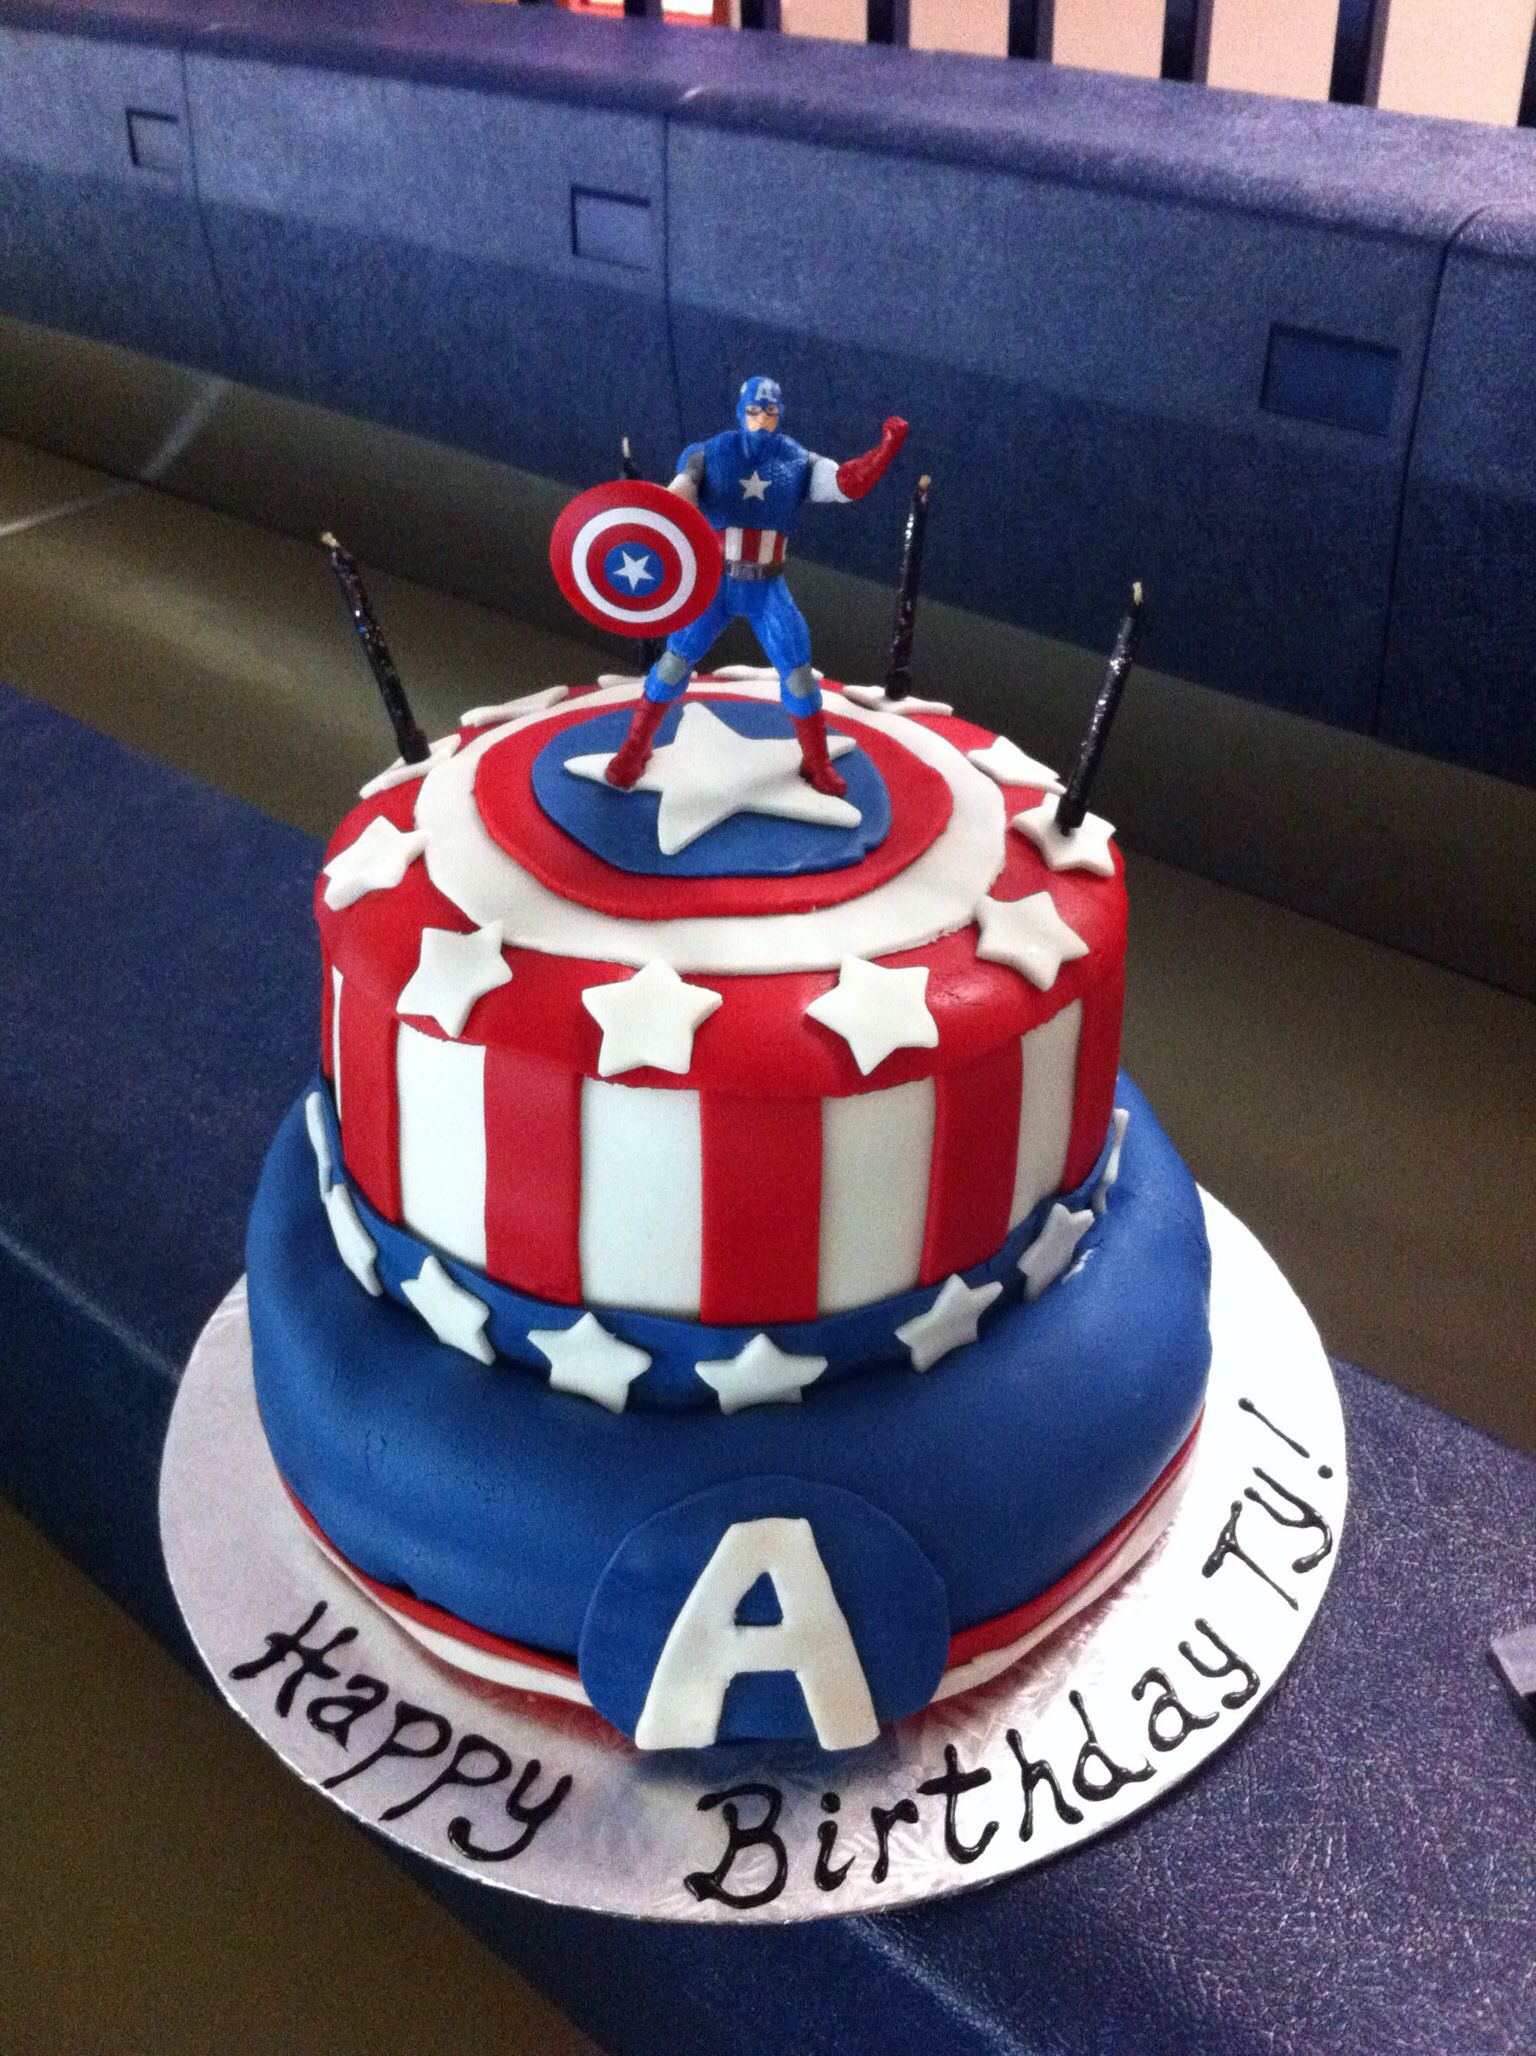 Captain America Fondant Cake Visit To Grab An Amazing Super Hero Shirt Now On Sal Captain America Birthday Cake Captain America Cake Captain America Birthday